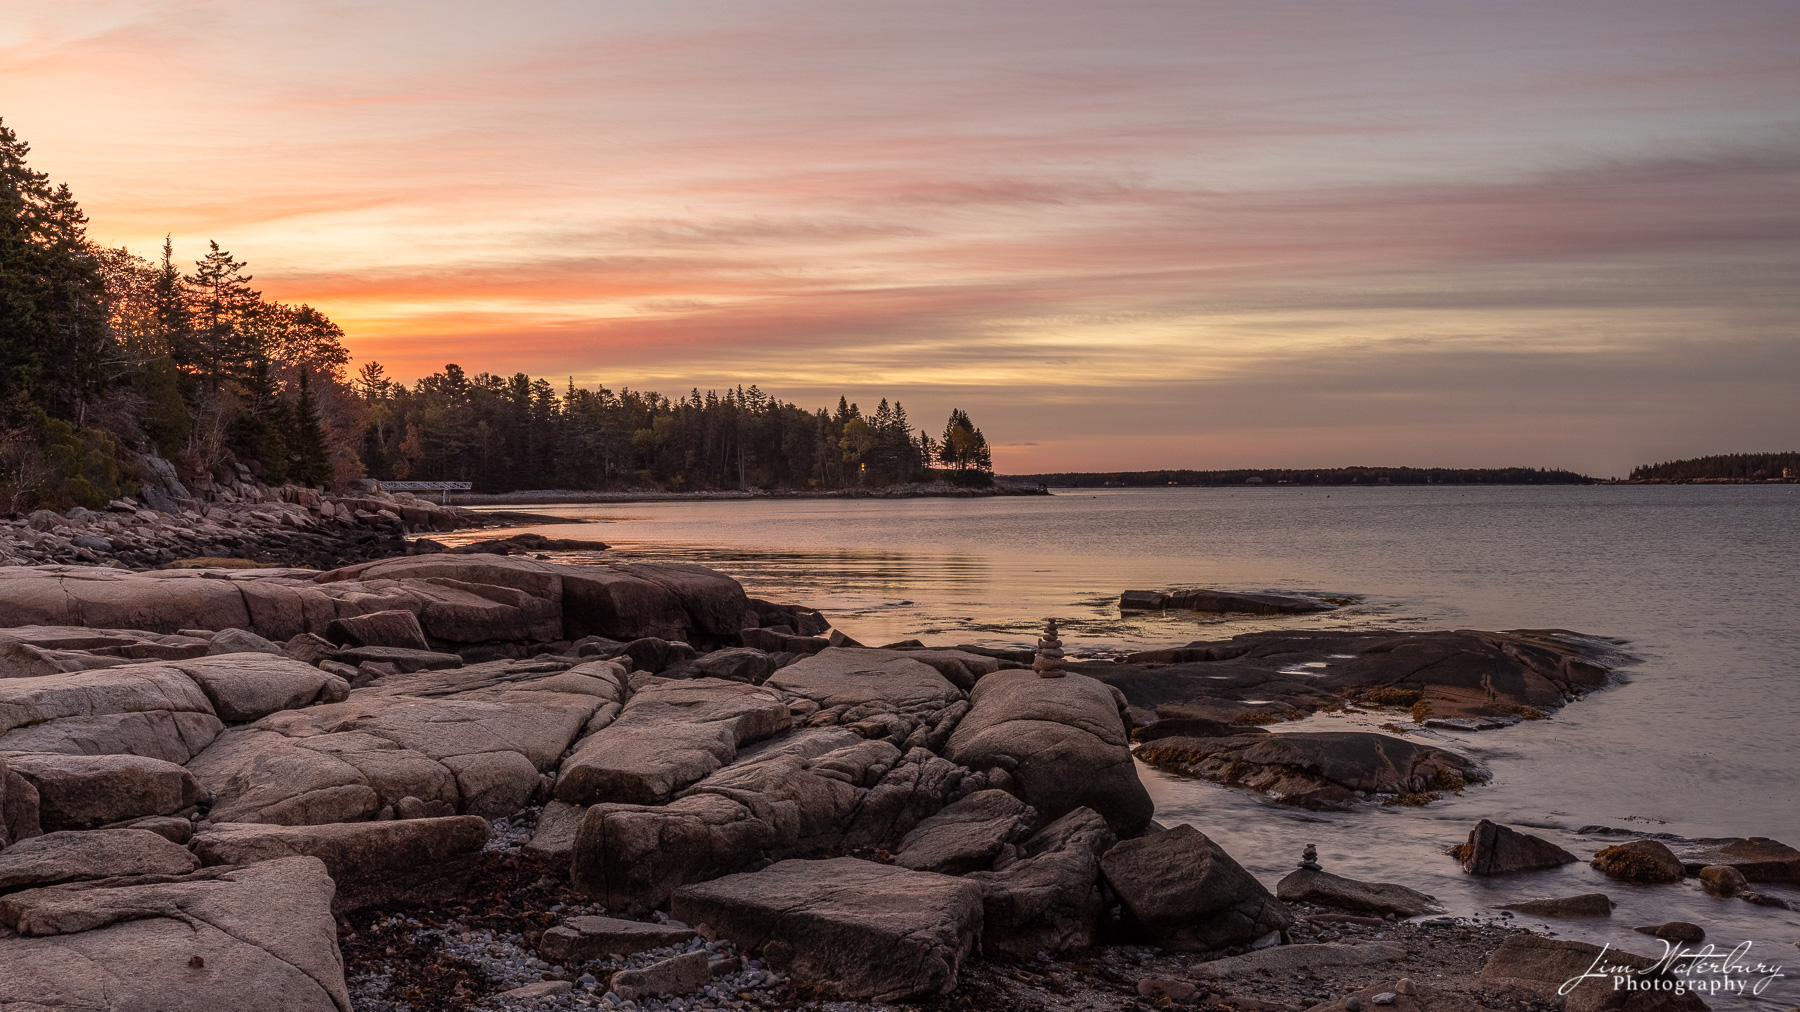 An October sunrise over Bracy Cove, photographed from the Little Long Pond trailhead.